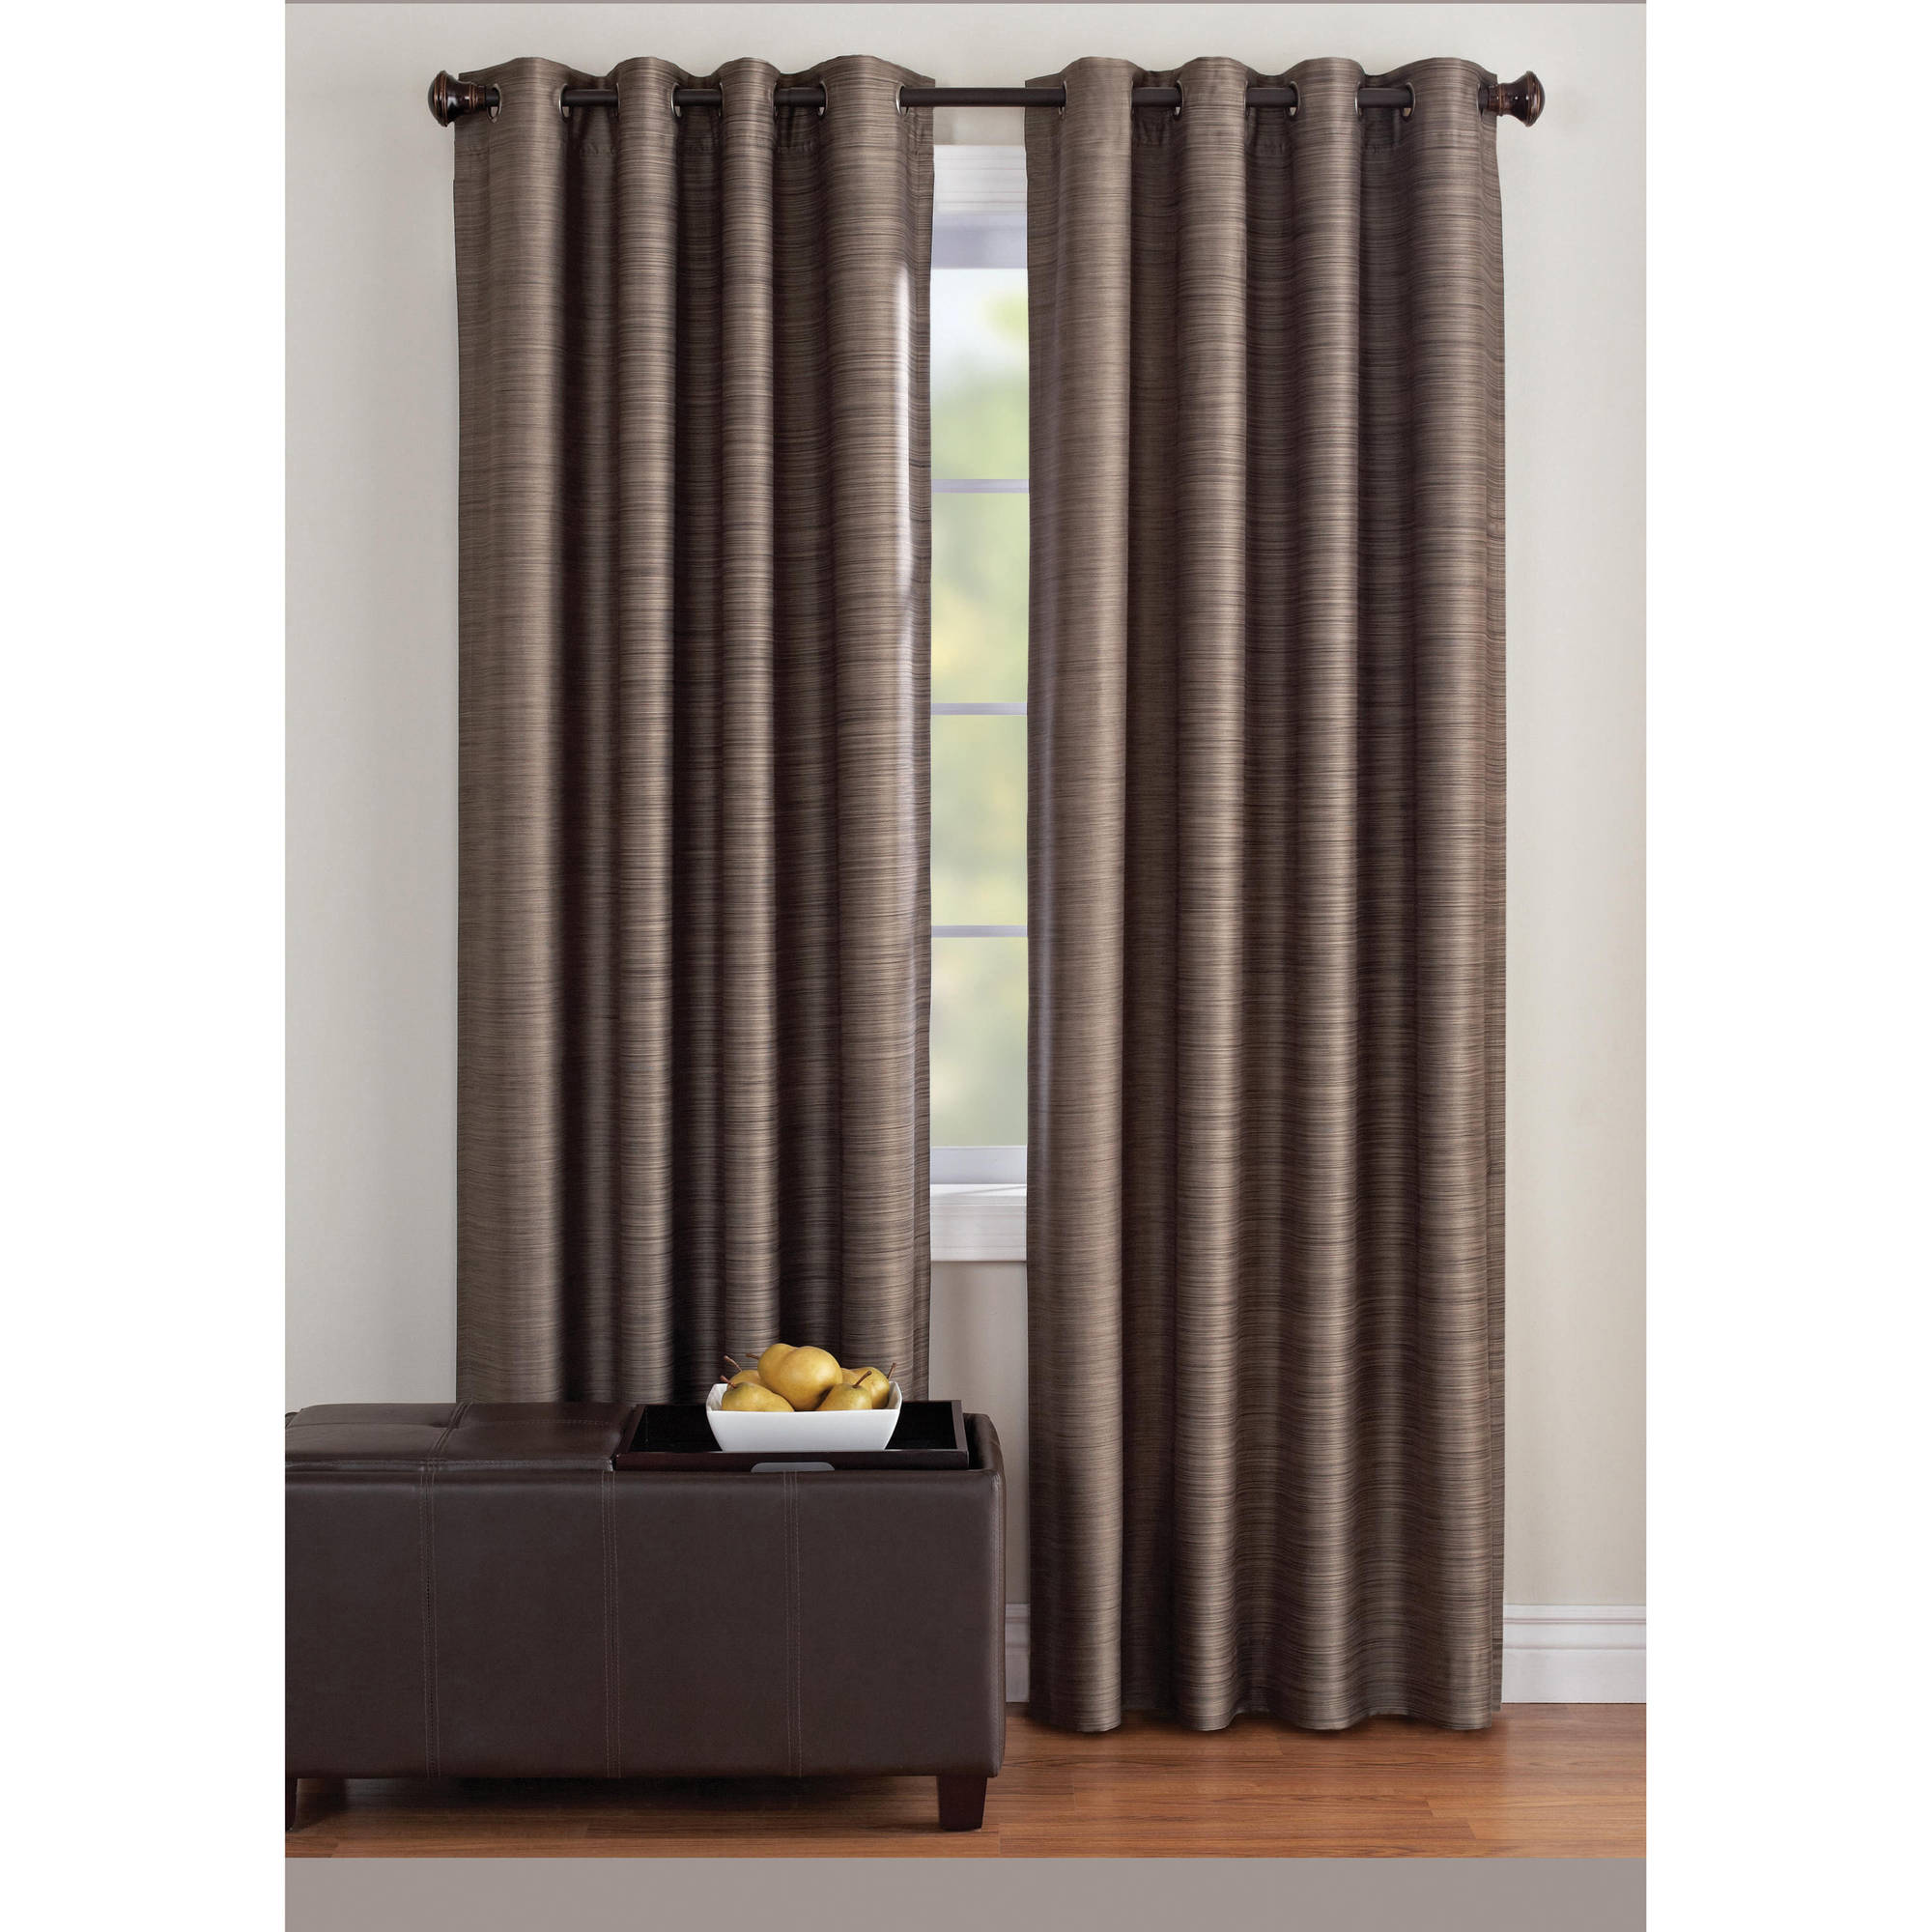 childrens blackout striped curtains children in sst stripes s grey cm products x stripe woven white standard and